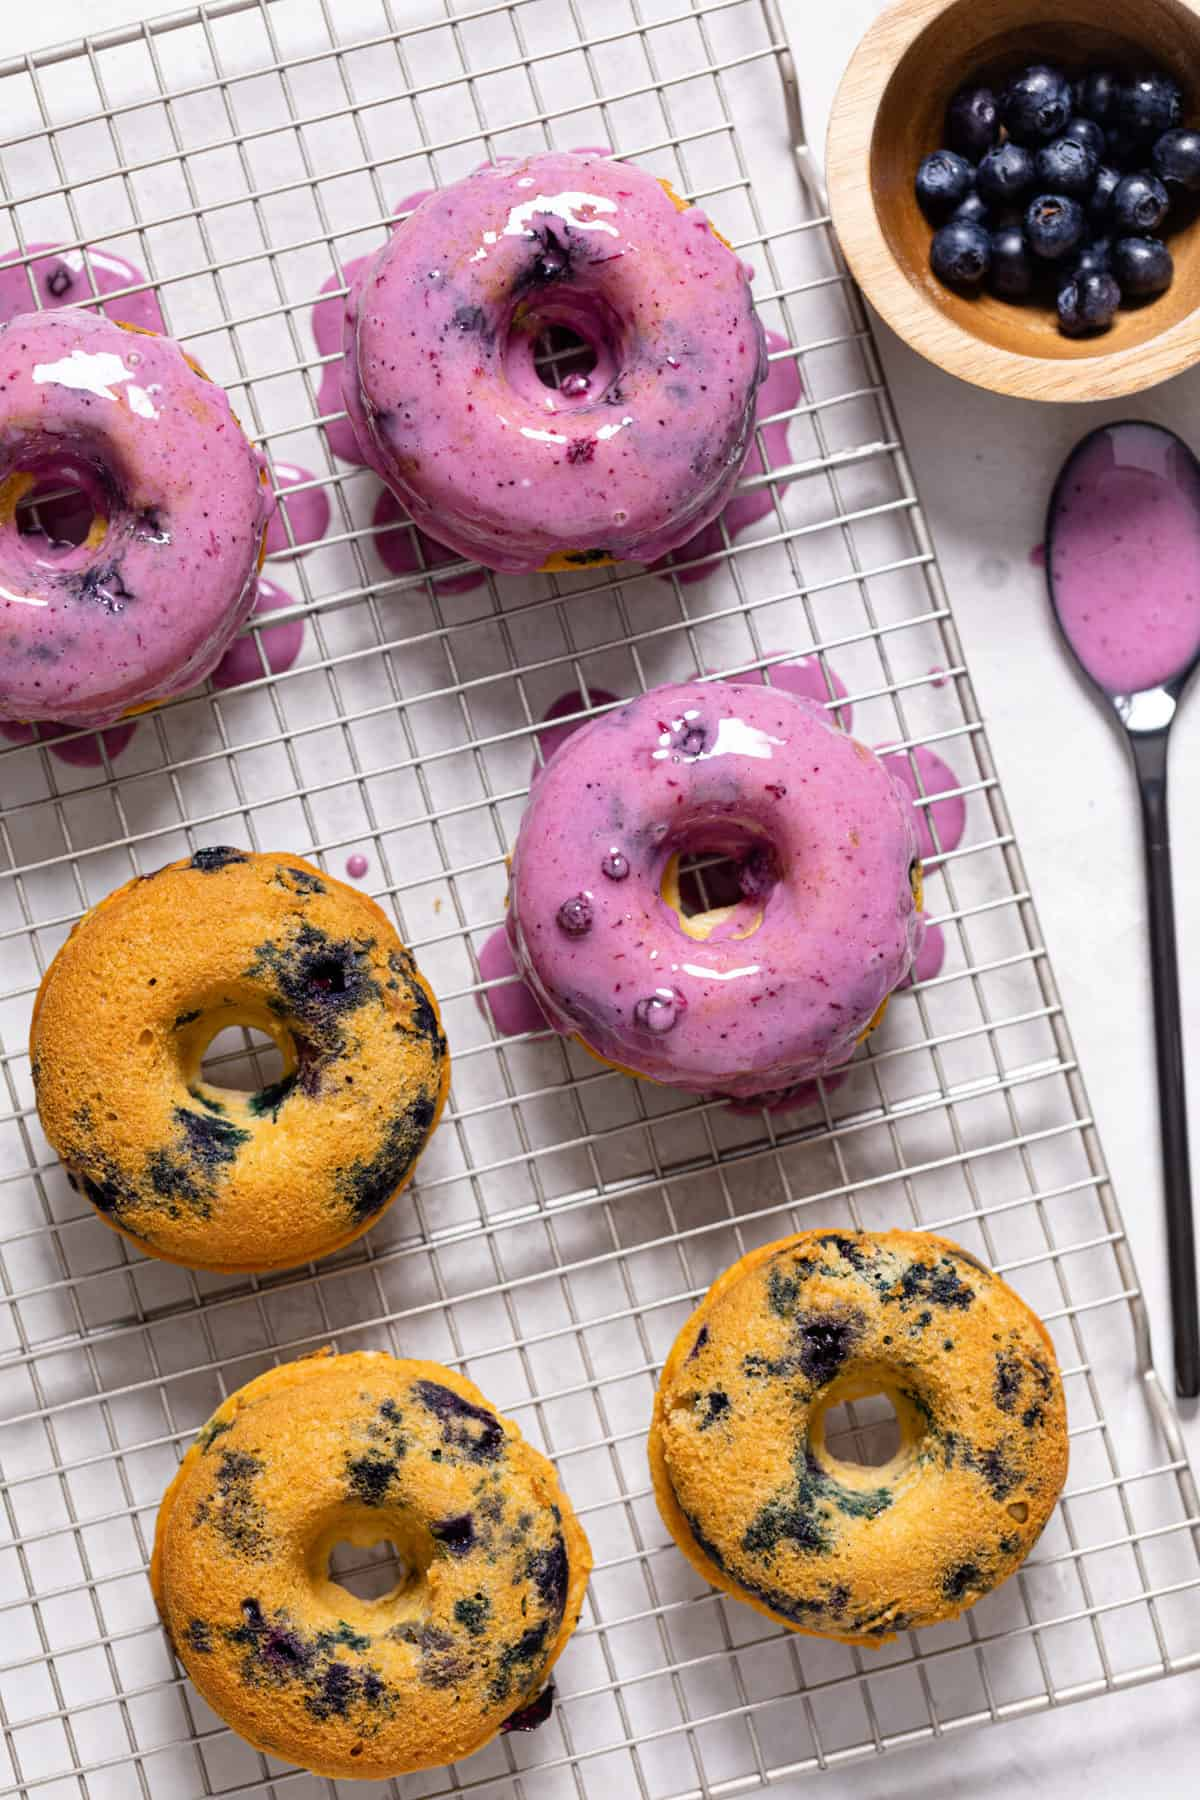 Healthy Blueberry Vegan Donuts with Blueberry Glaze